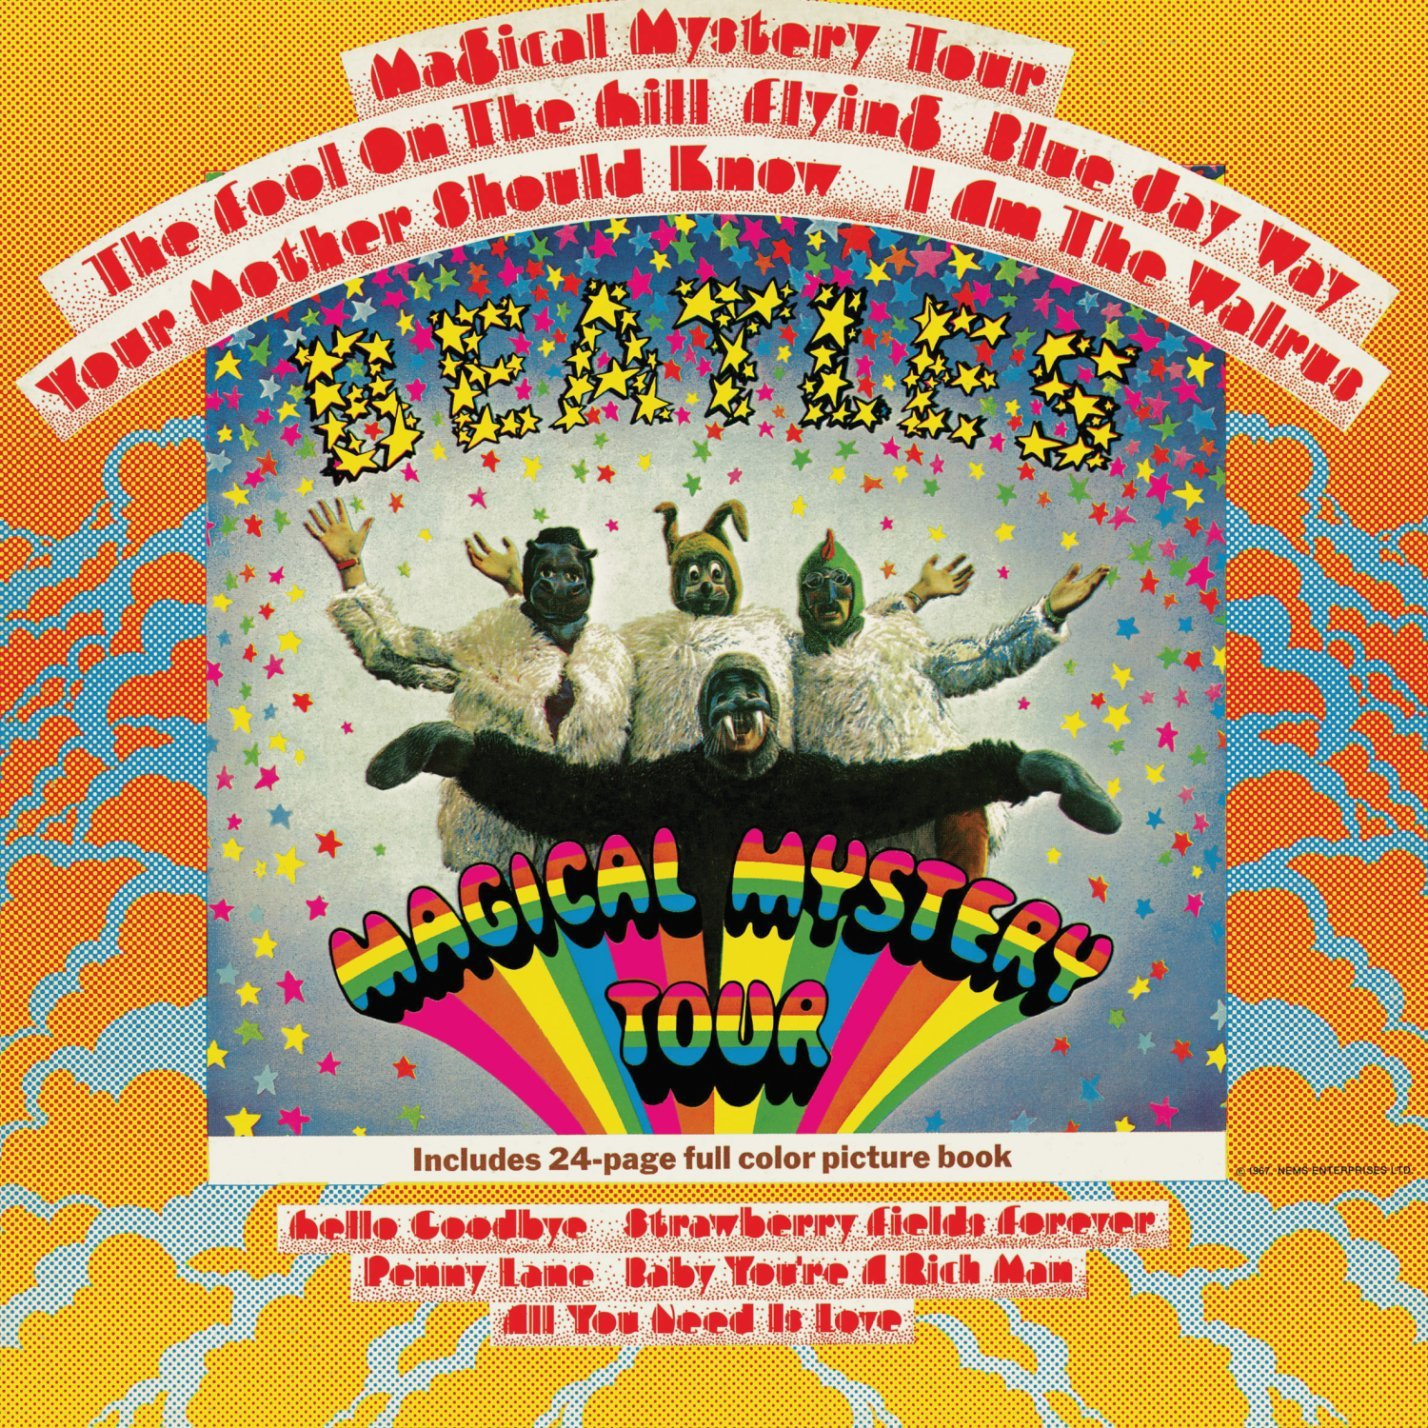 BEATLES (The) - Magical Mystery Tour (Mono)